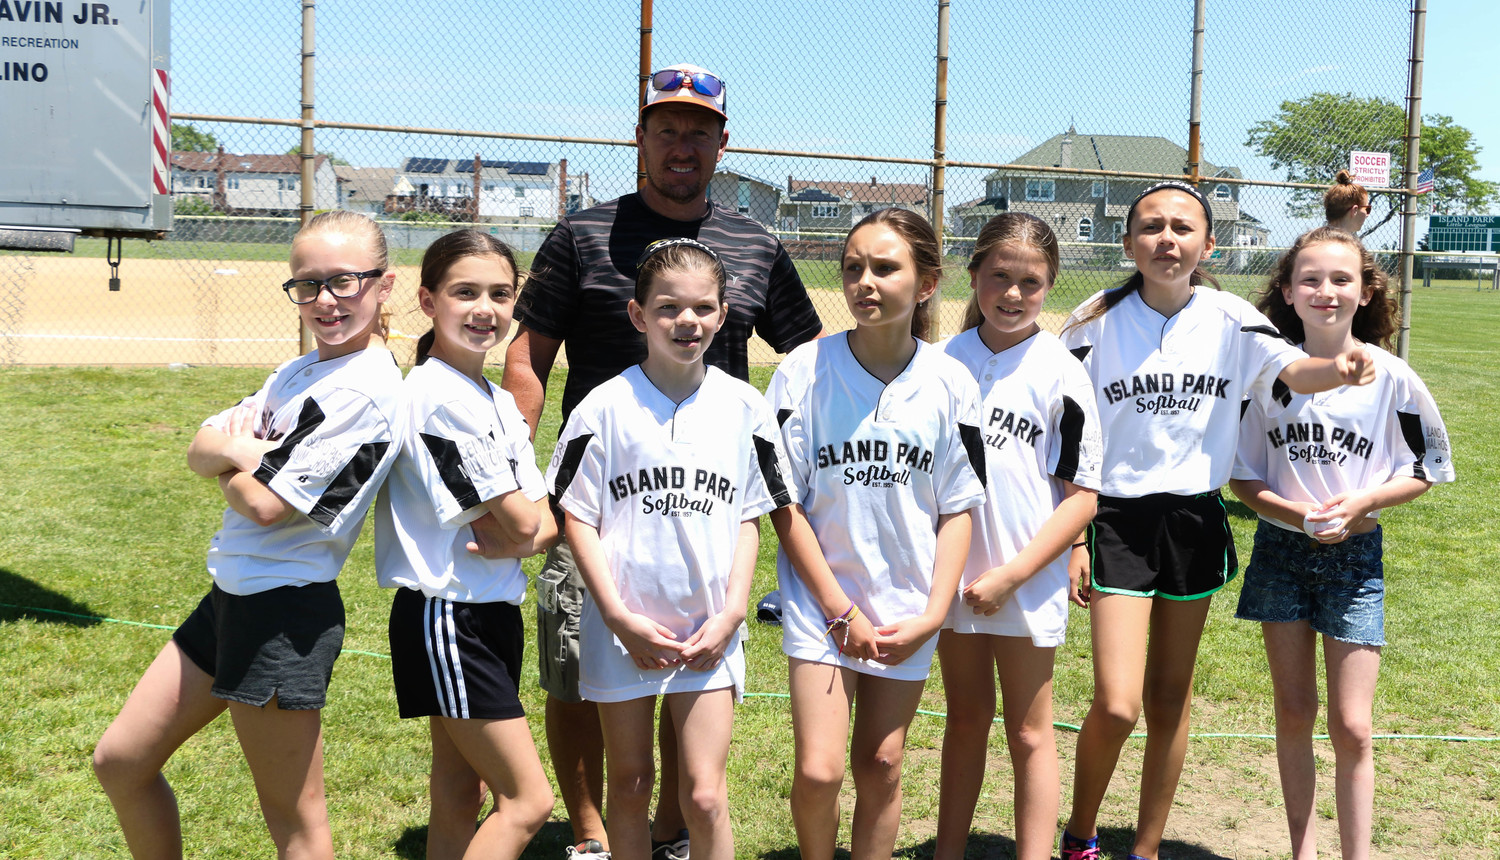 The Island Park Extreme softball team is one of 19 teams comprising the Island Park Little League. The players waited patiently for their well-earned trophies to be handed out at the annual Trophy Day on June 16 at Shell Creek Park.